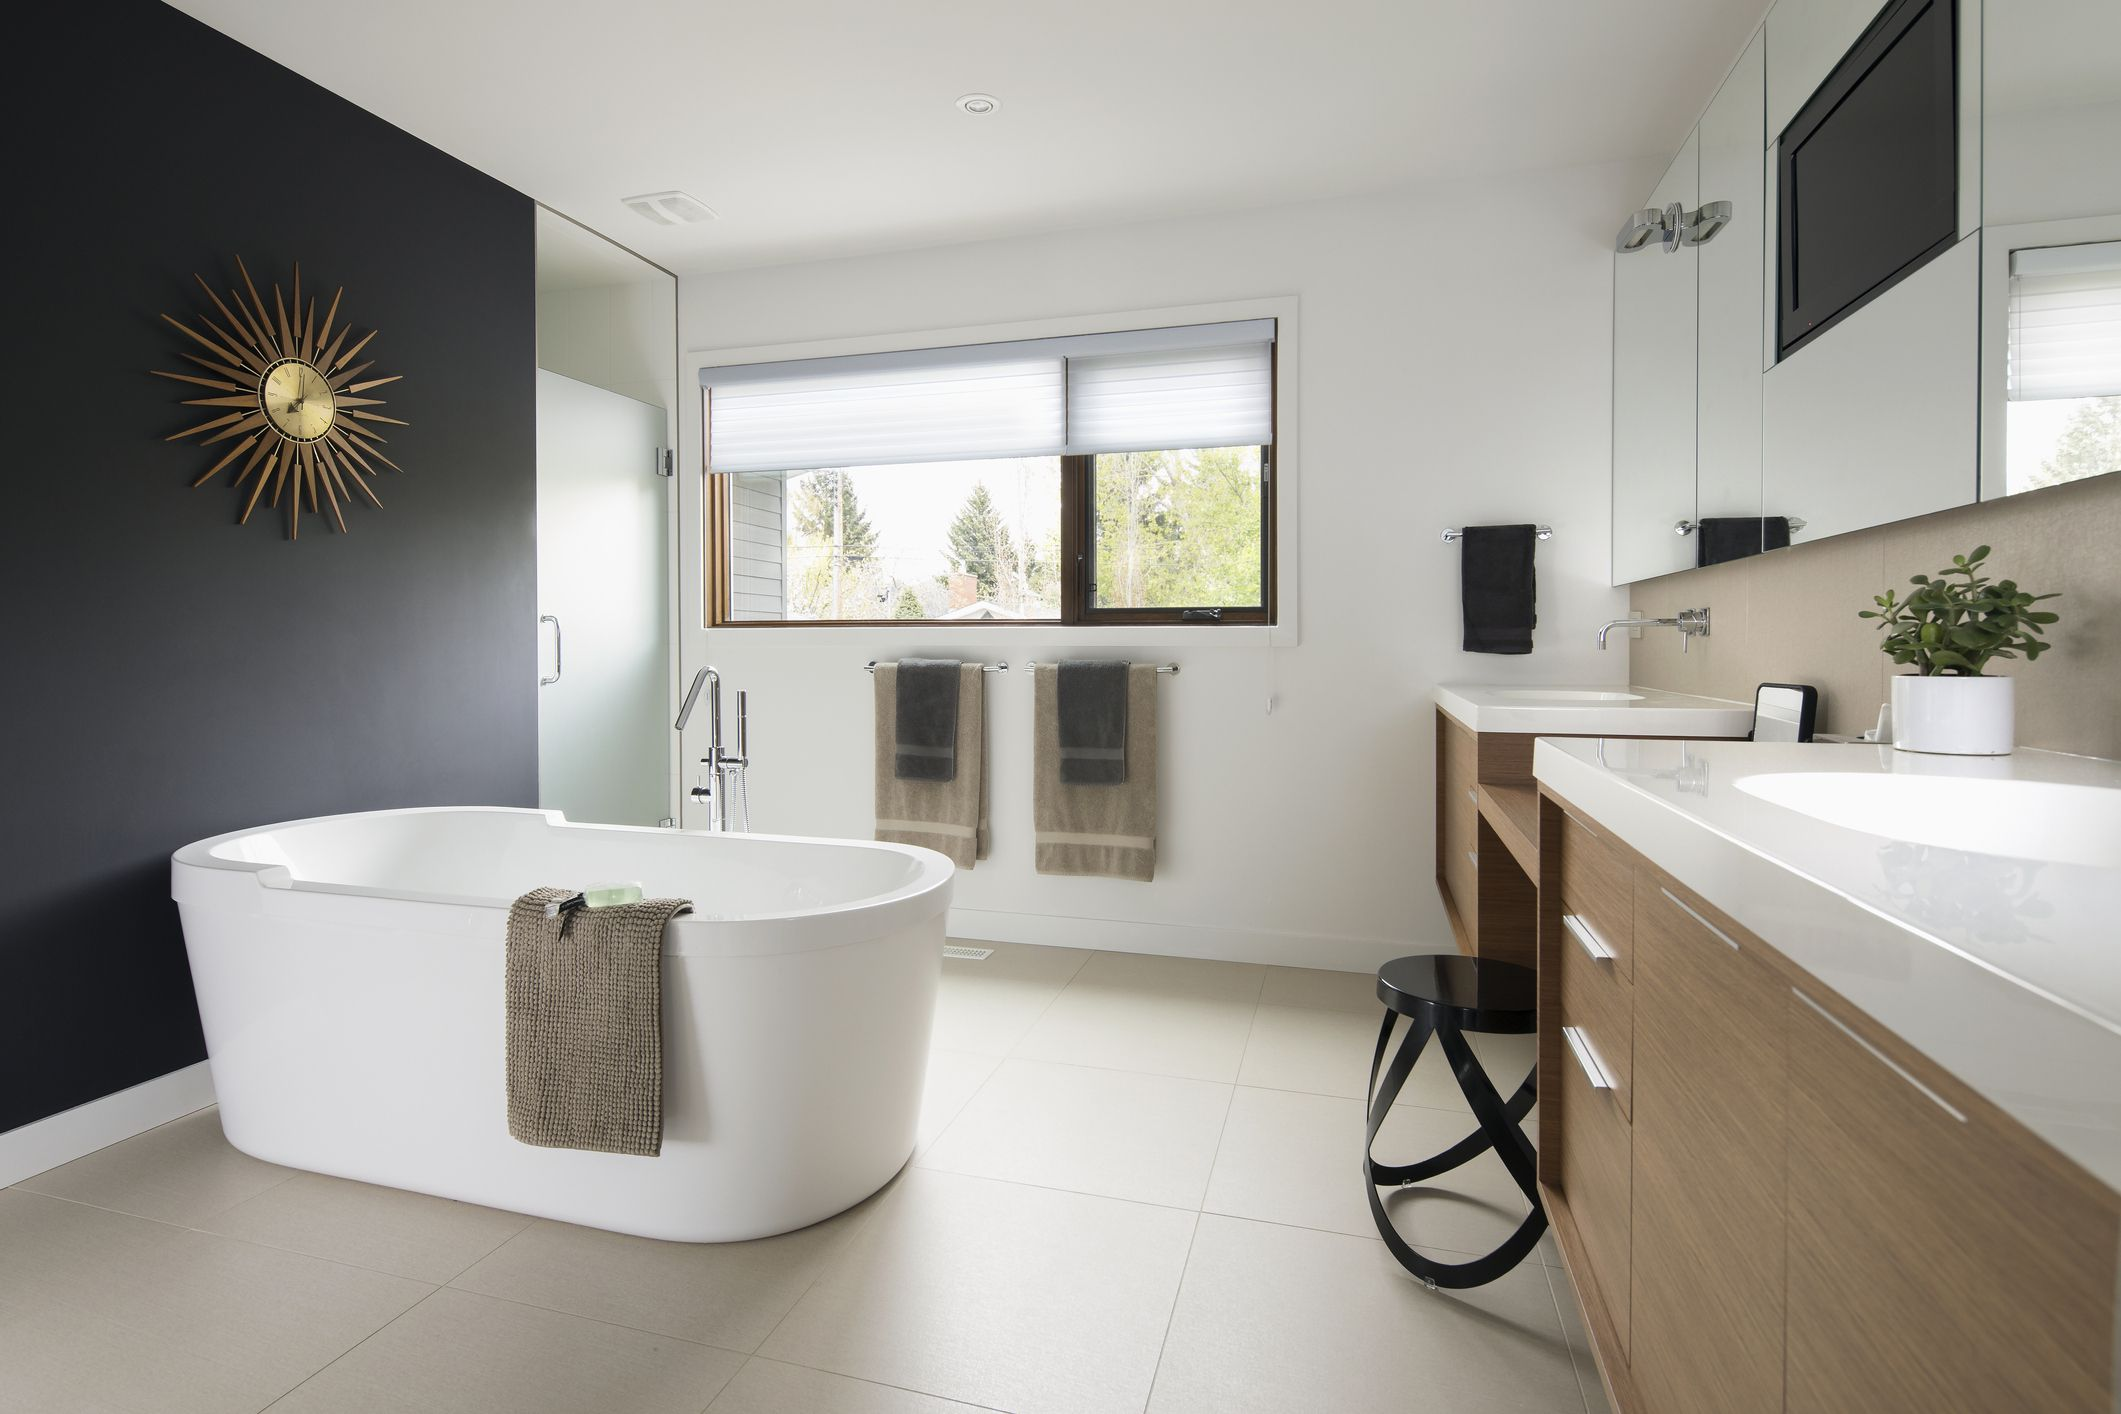 14 Ideas For Modern-Style Bathrooms